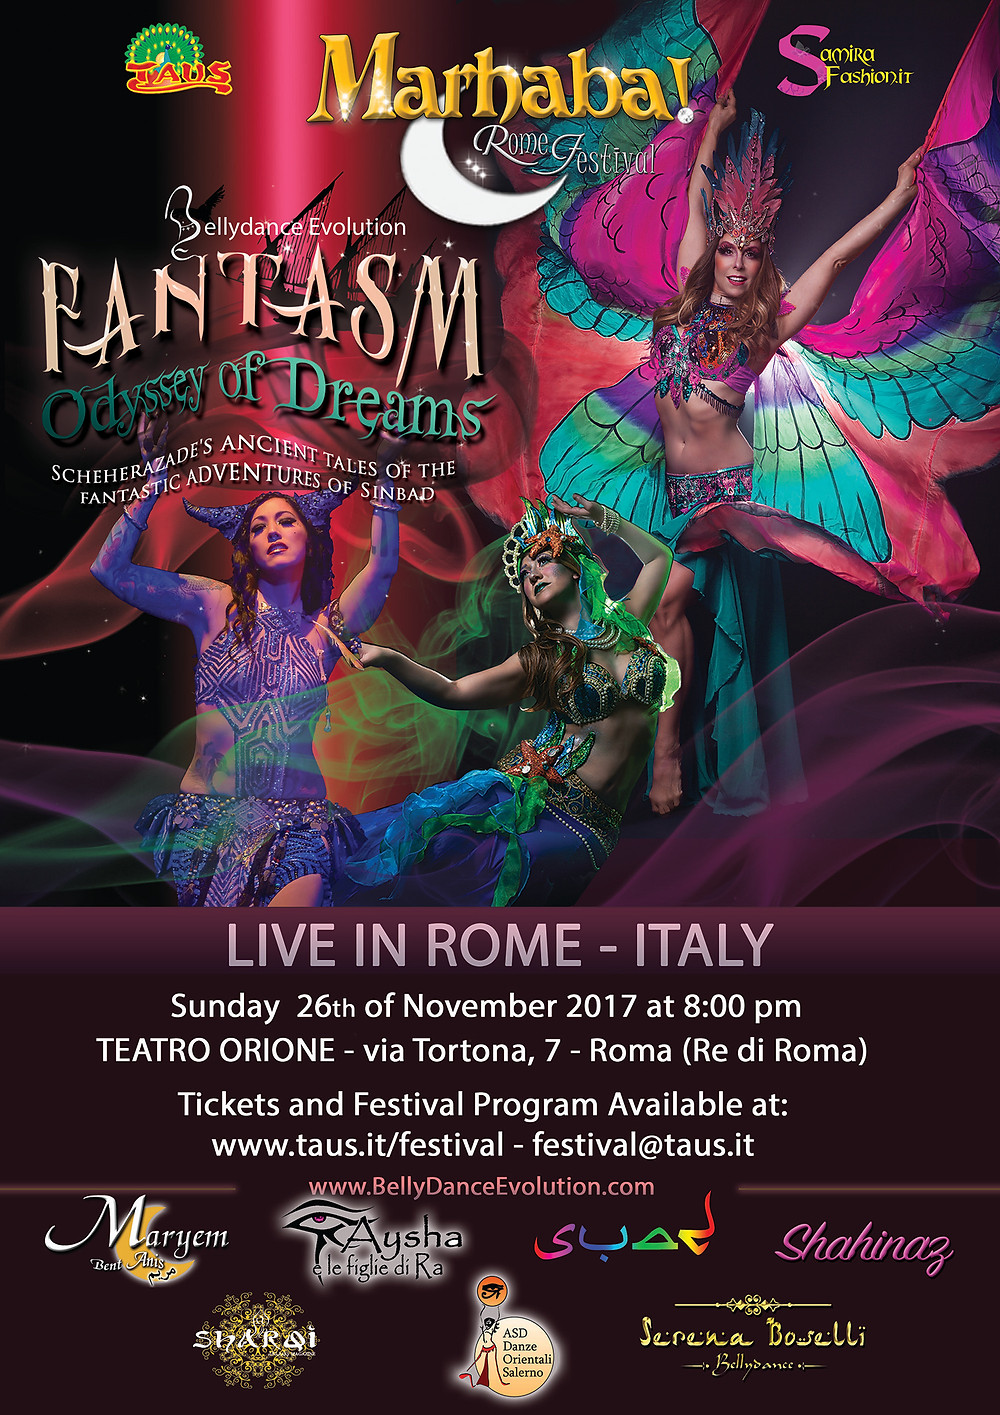 Bellydance  Evolution FANTASM ODISSEY OF DREAMS in Rome